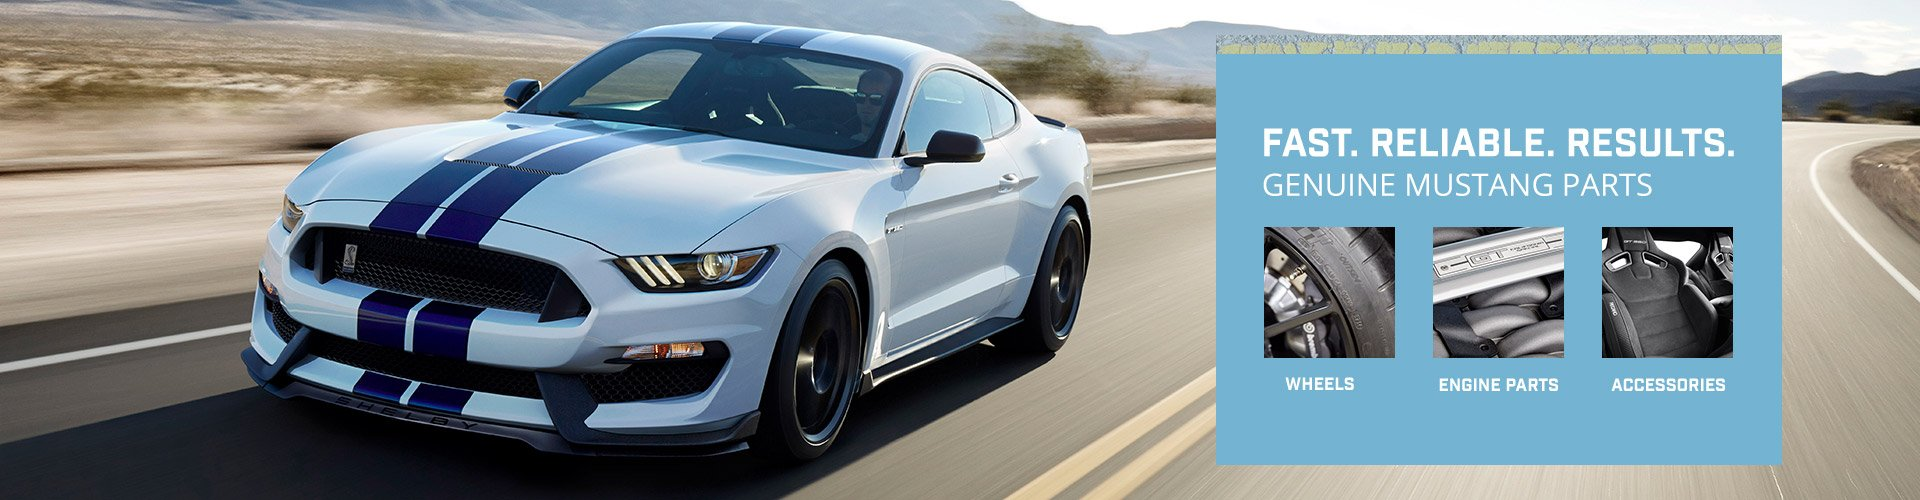 Ford Mustang OEM Parts & Accessories